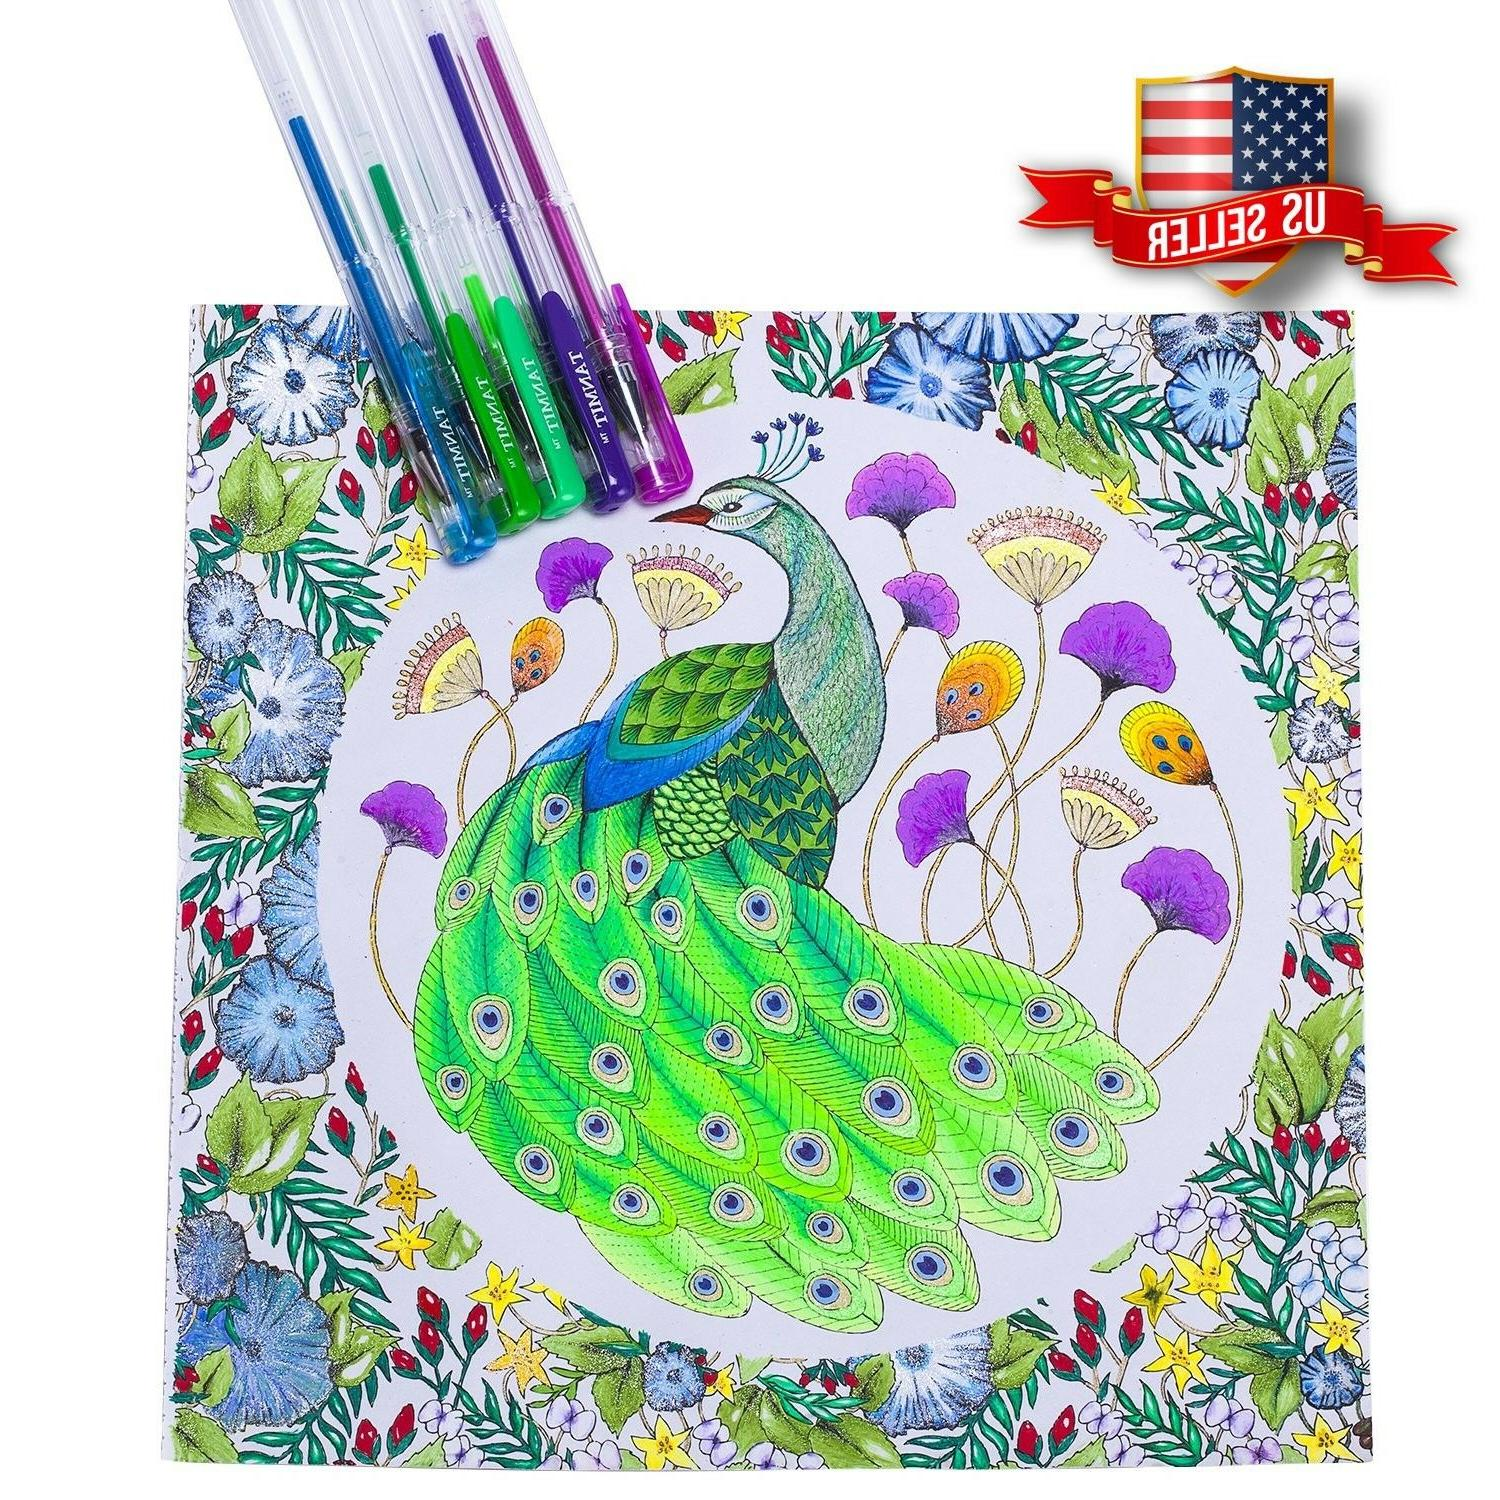 Tanmit 240 Color Gel Pens Set for Adult Coloring Drawing